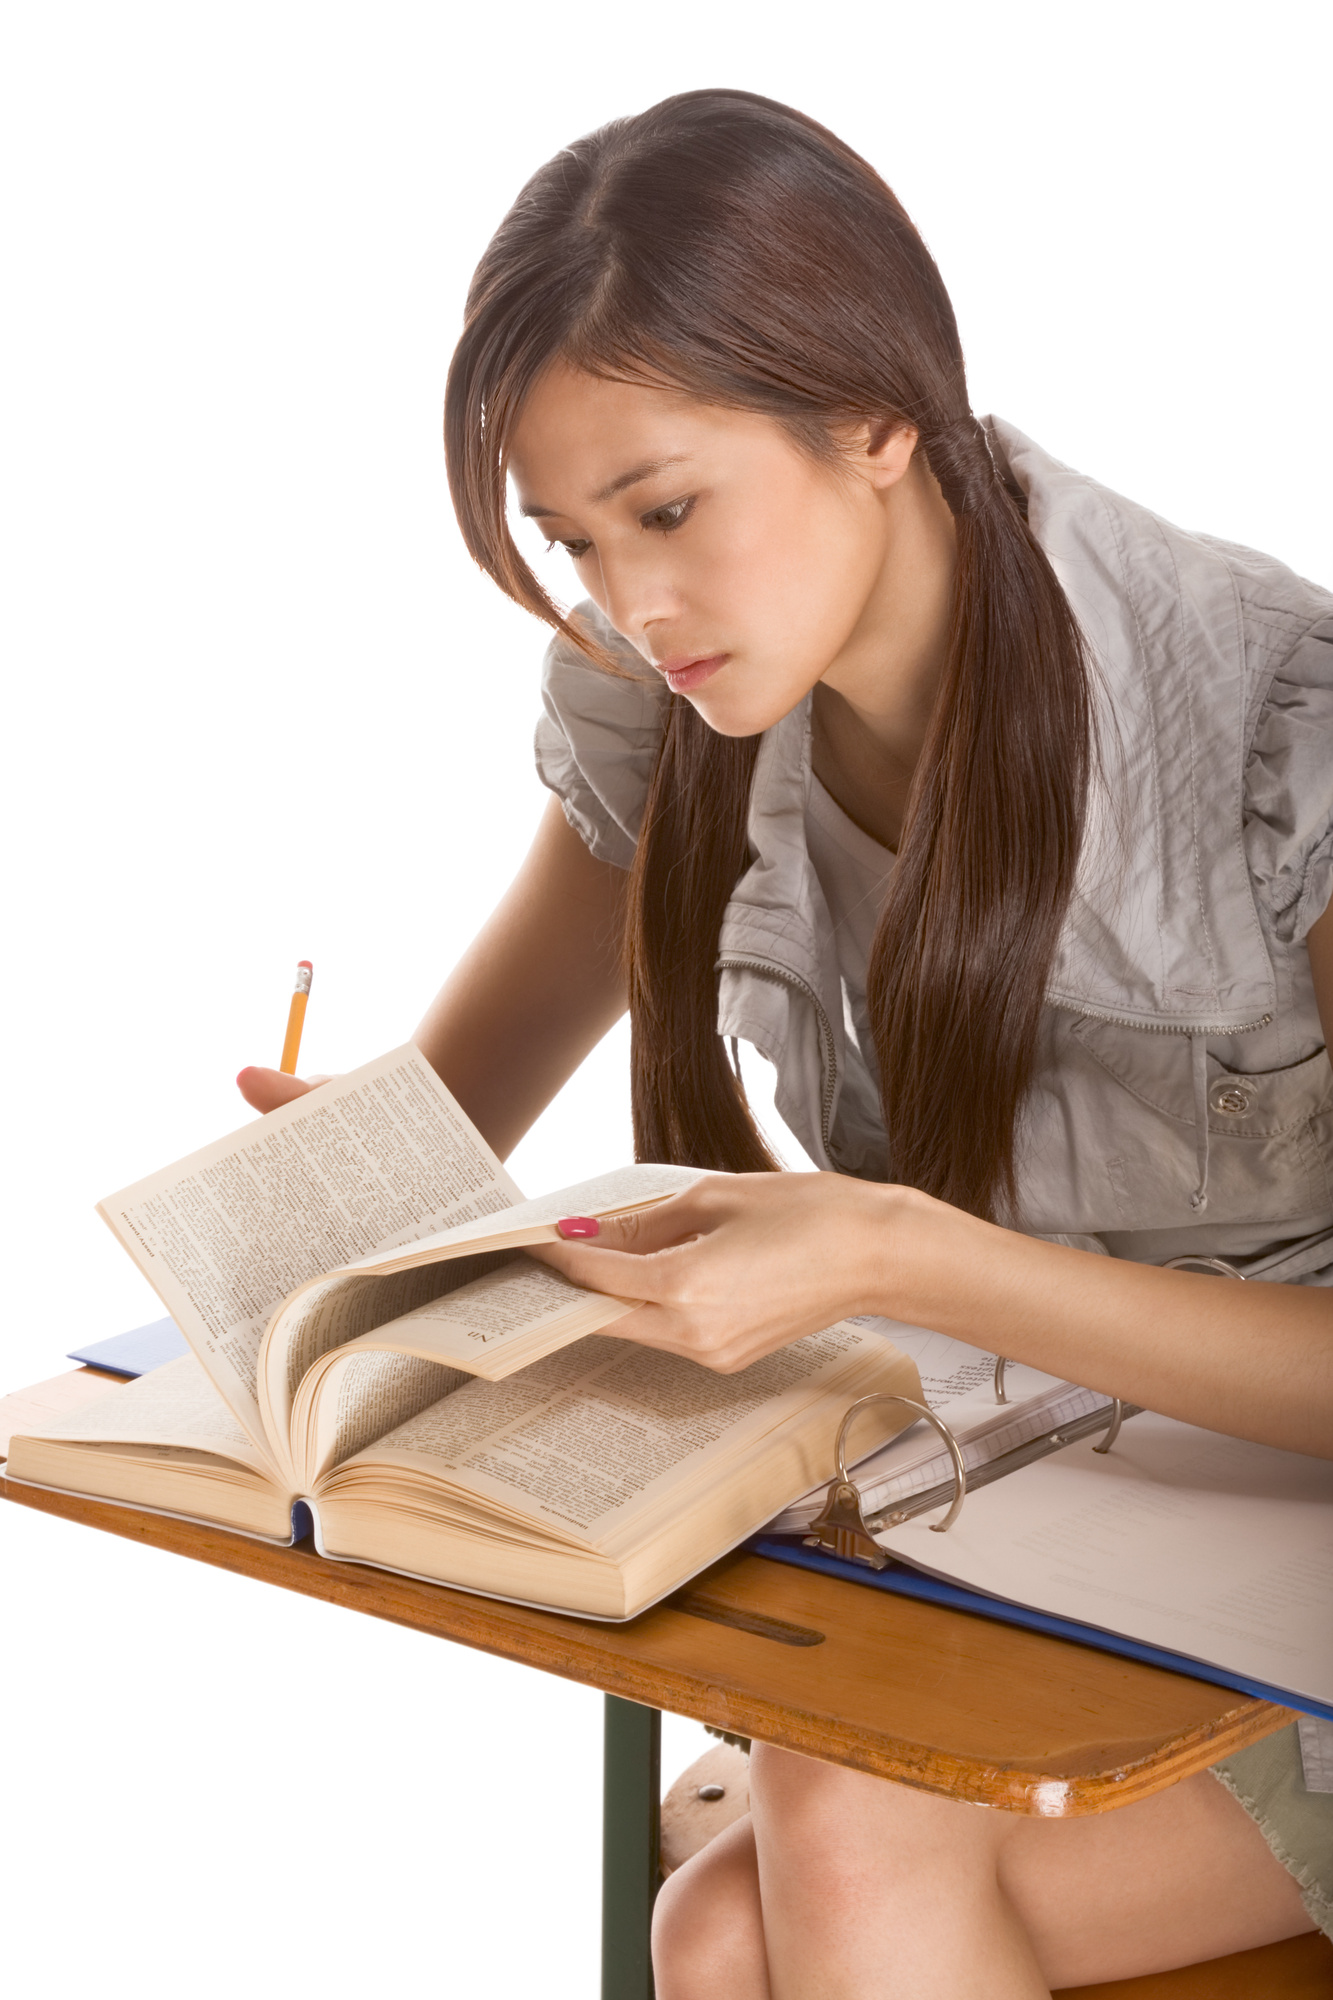 Not Sure How to Prepare for Your PTE Exam? Use These PTE Study Tips!